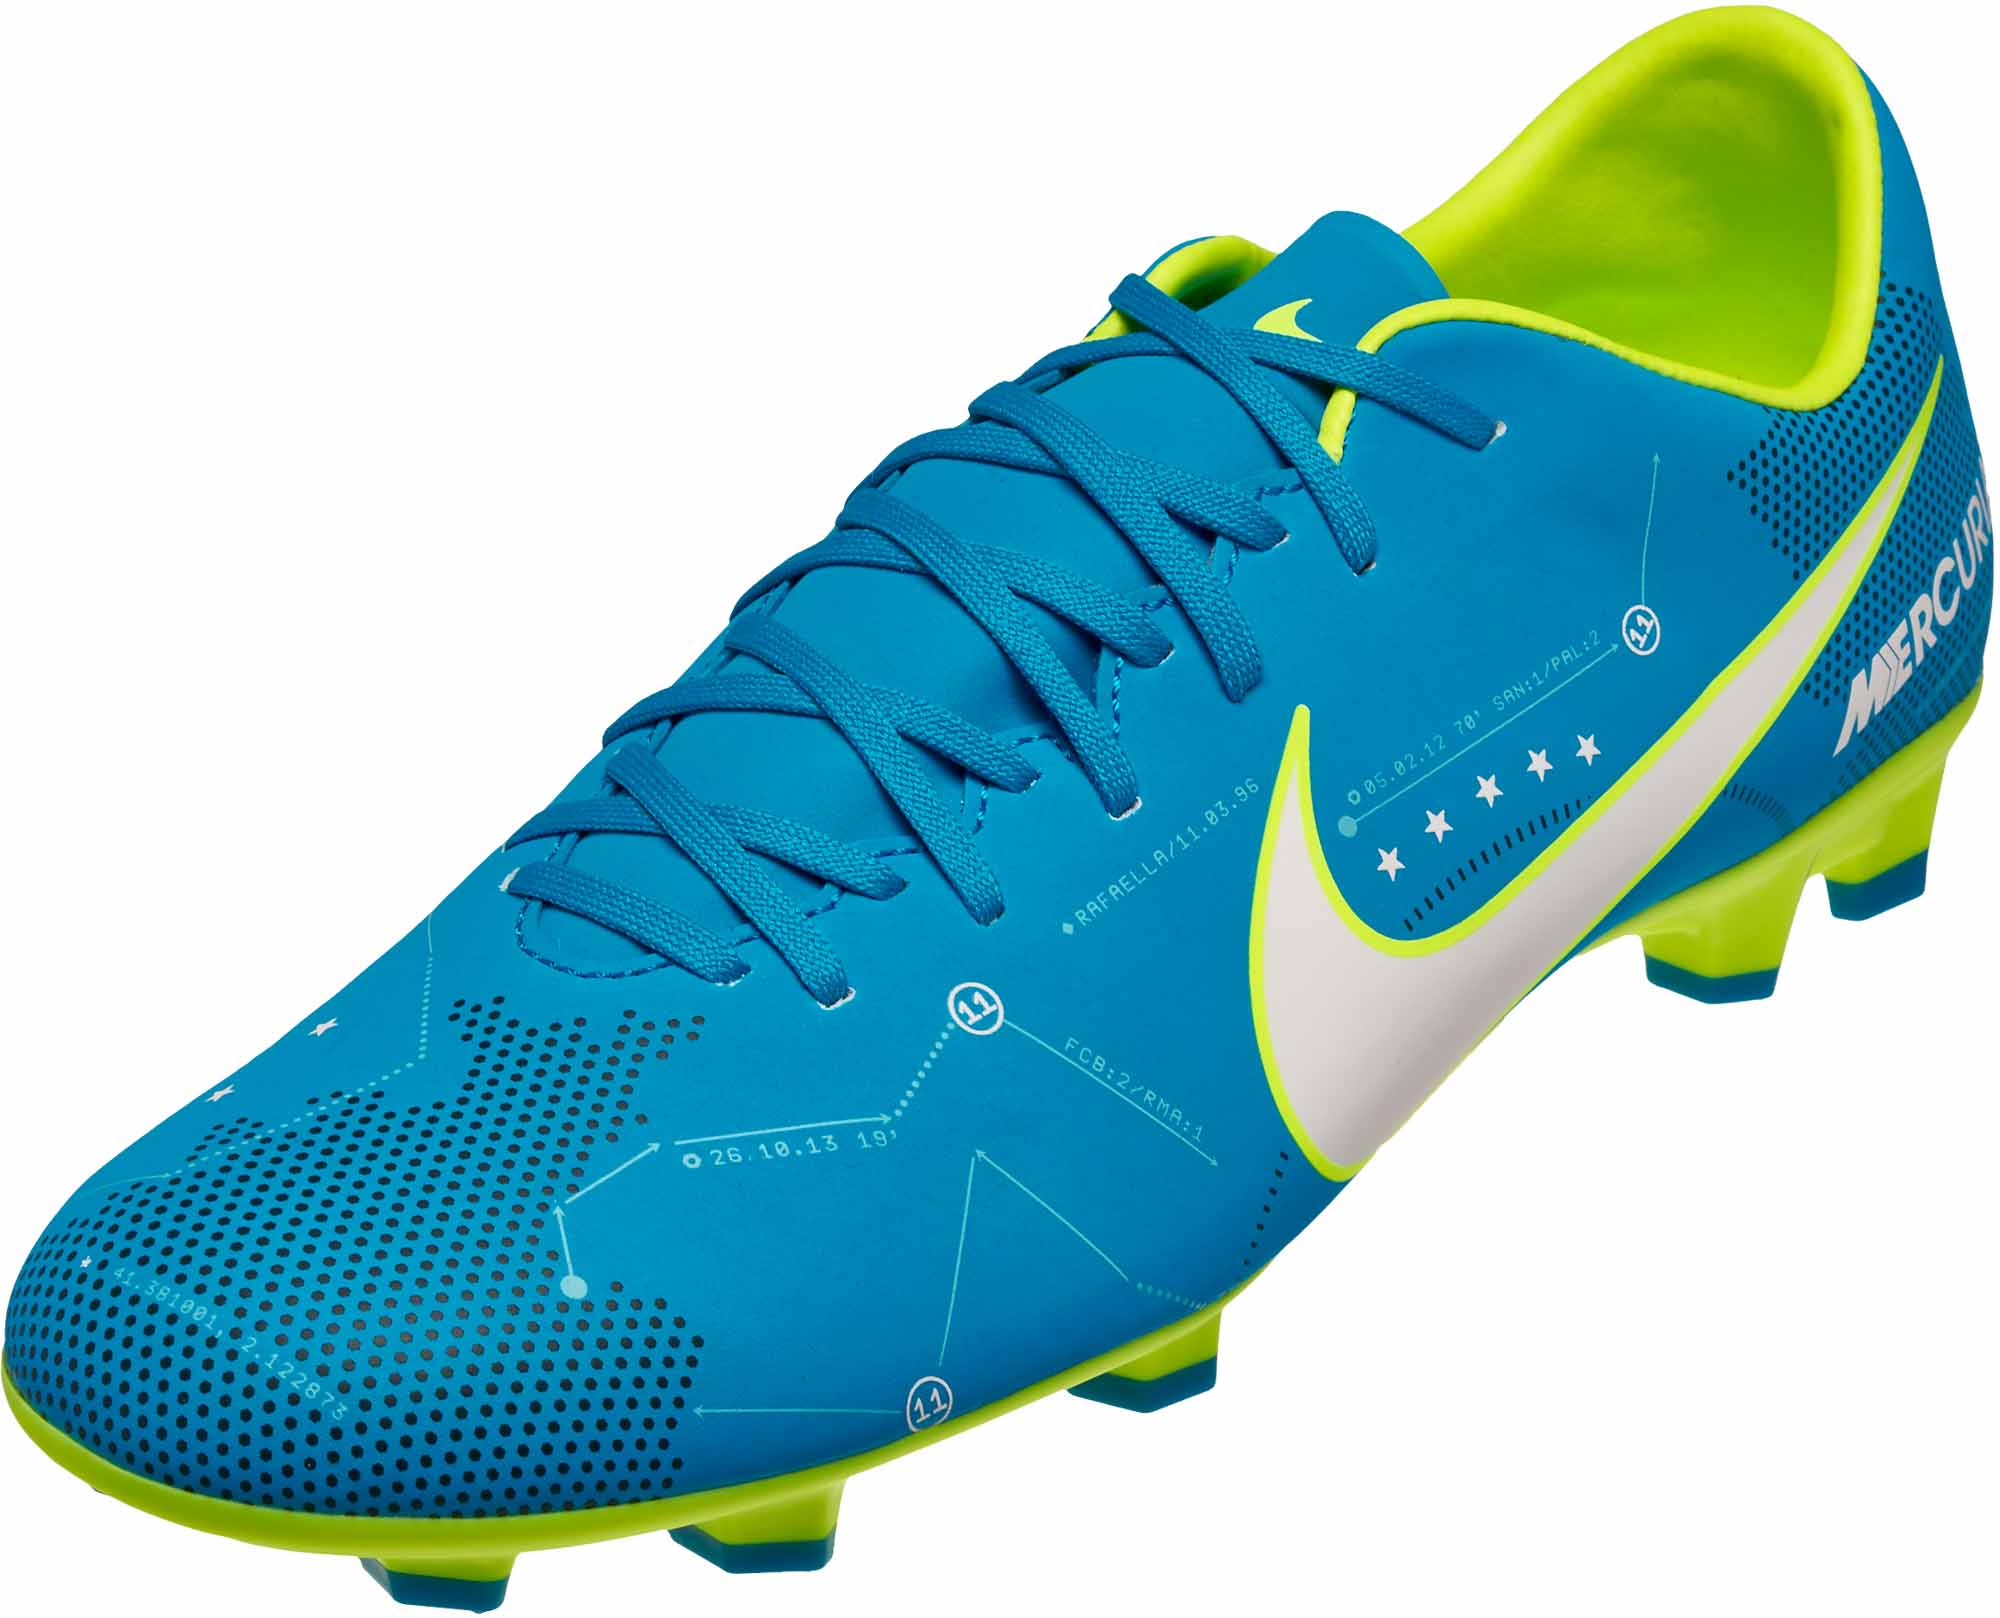 new style e5498 7916b Nike Mercurial Victory VI FG Soccer Cleats - Neymar - Blue ...